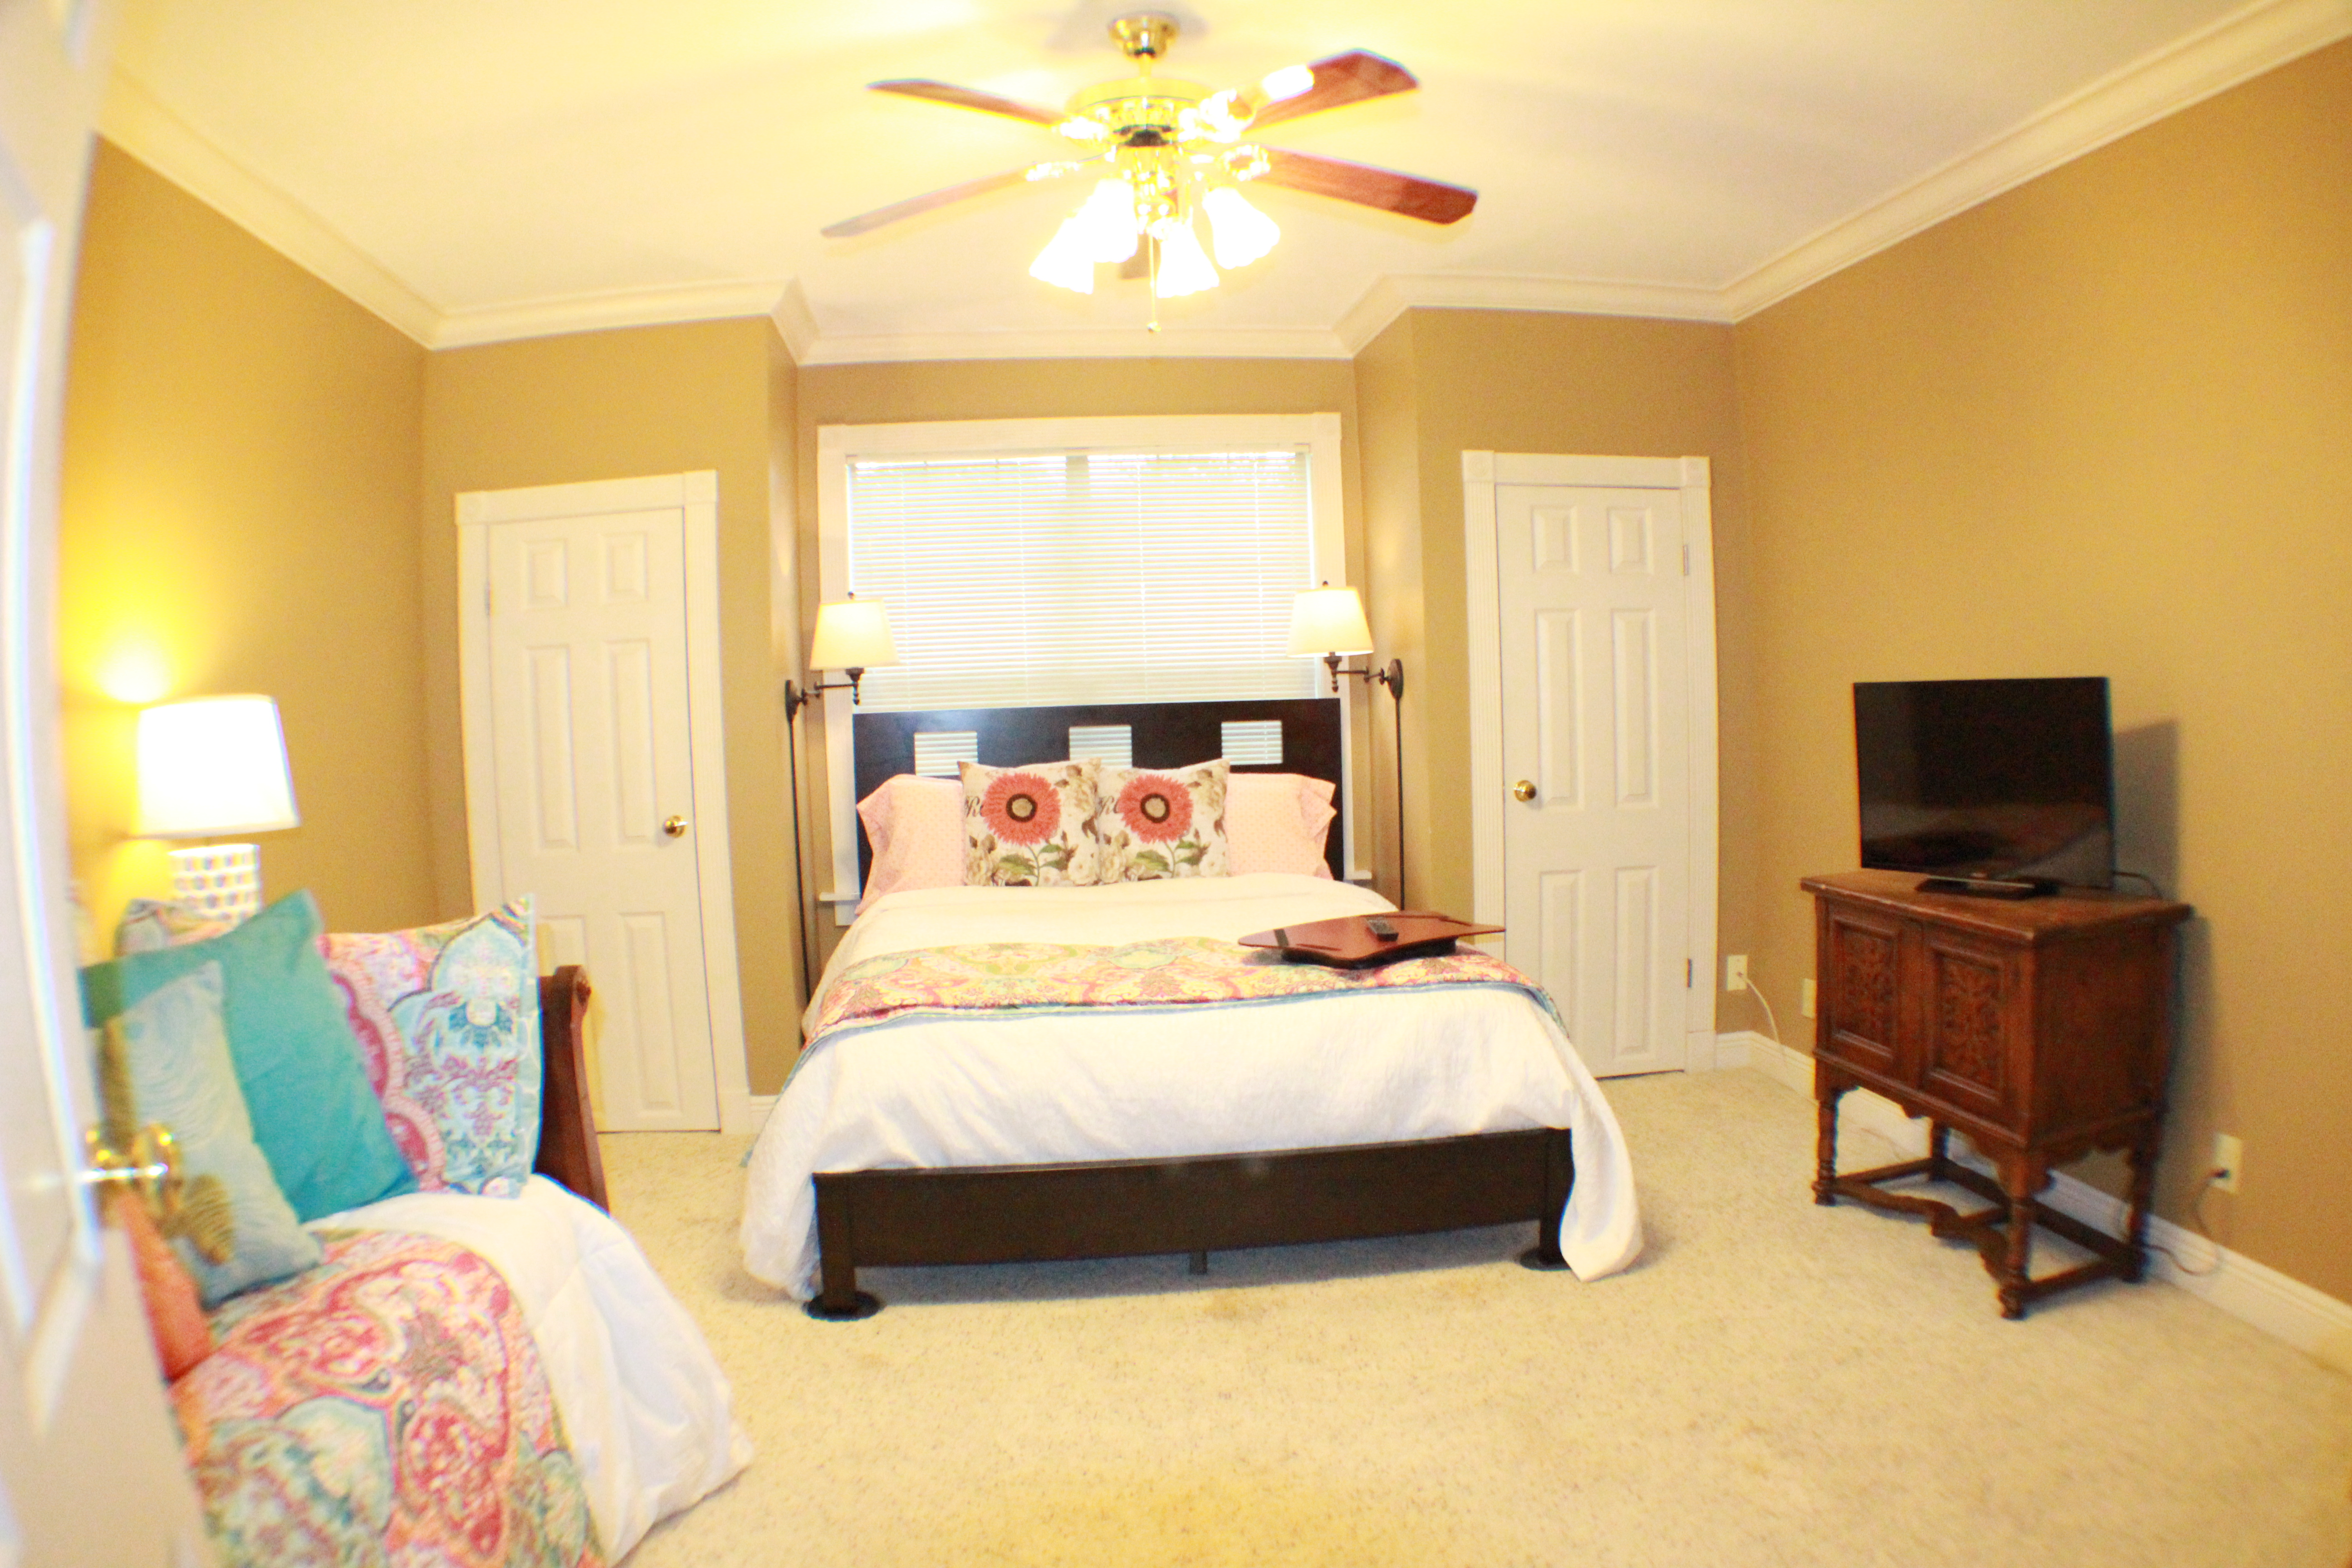 Extended Stay | Executive Housing